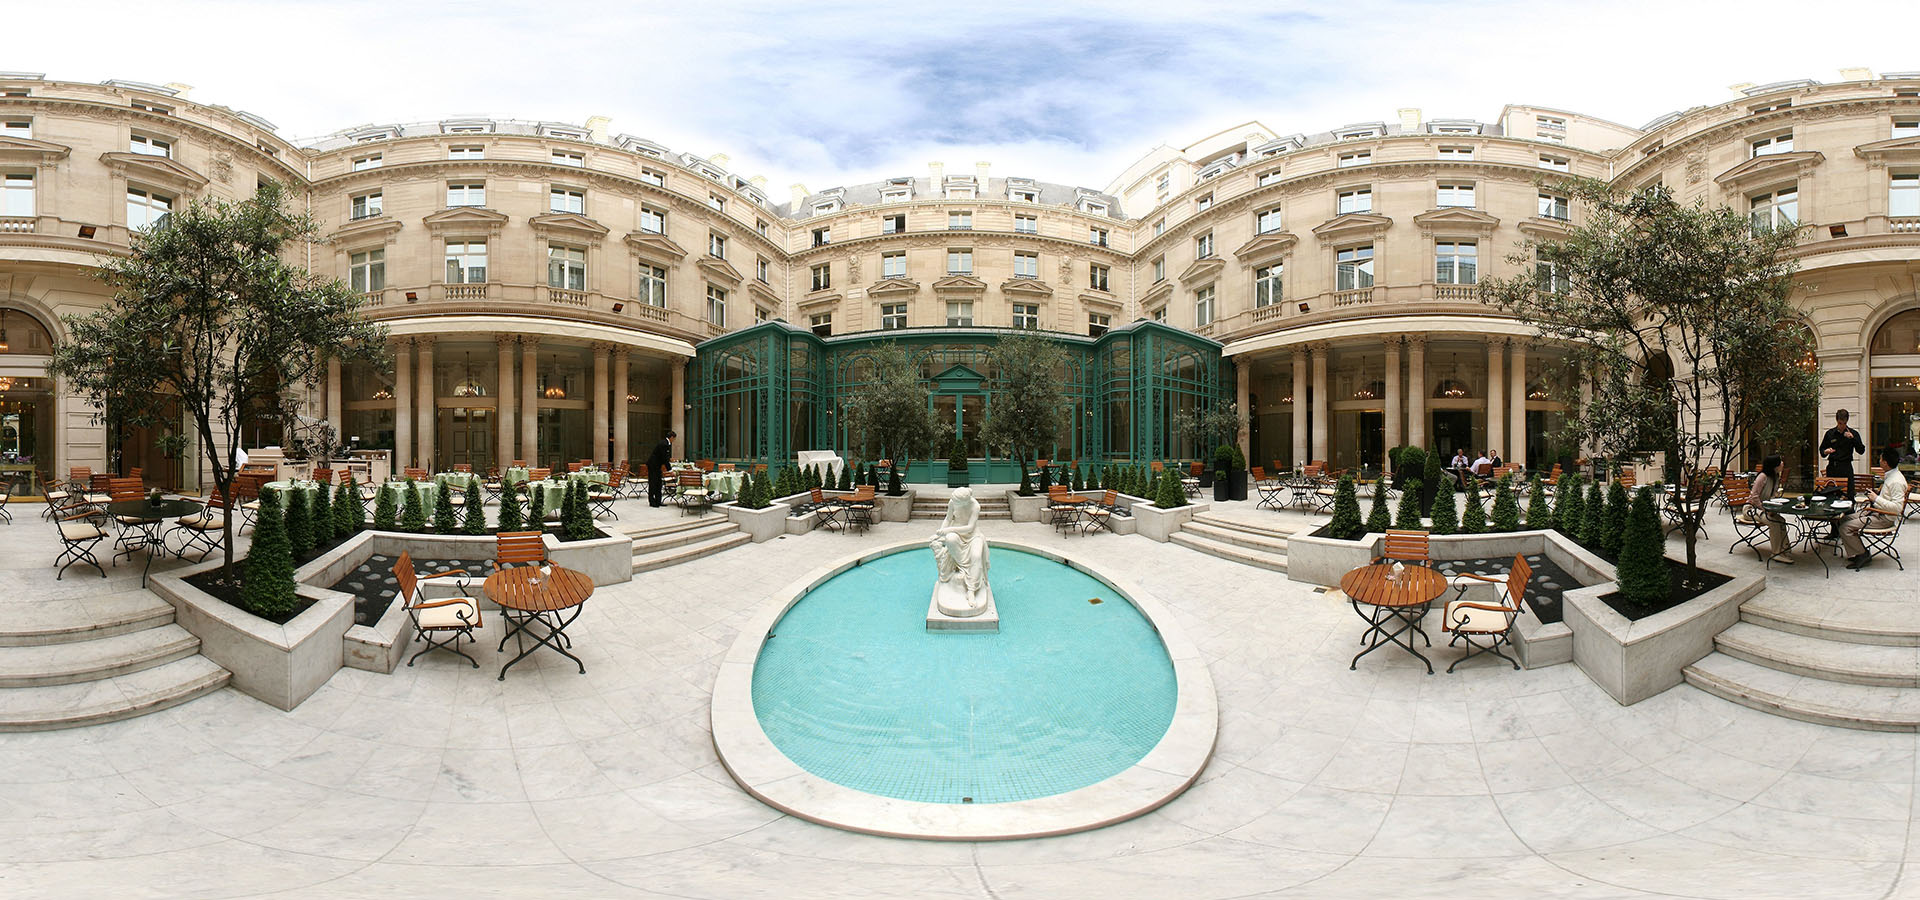 Westin-Hotel-Paris-360-Panorama-Virtual-Tours-OCEAN.LV-2